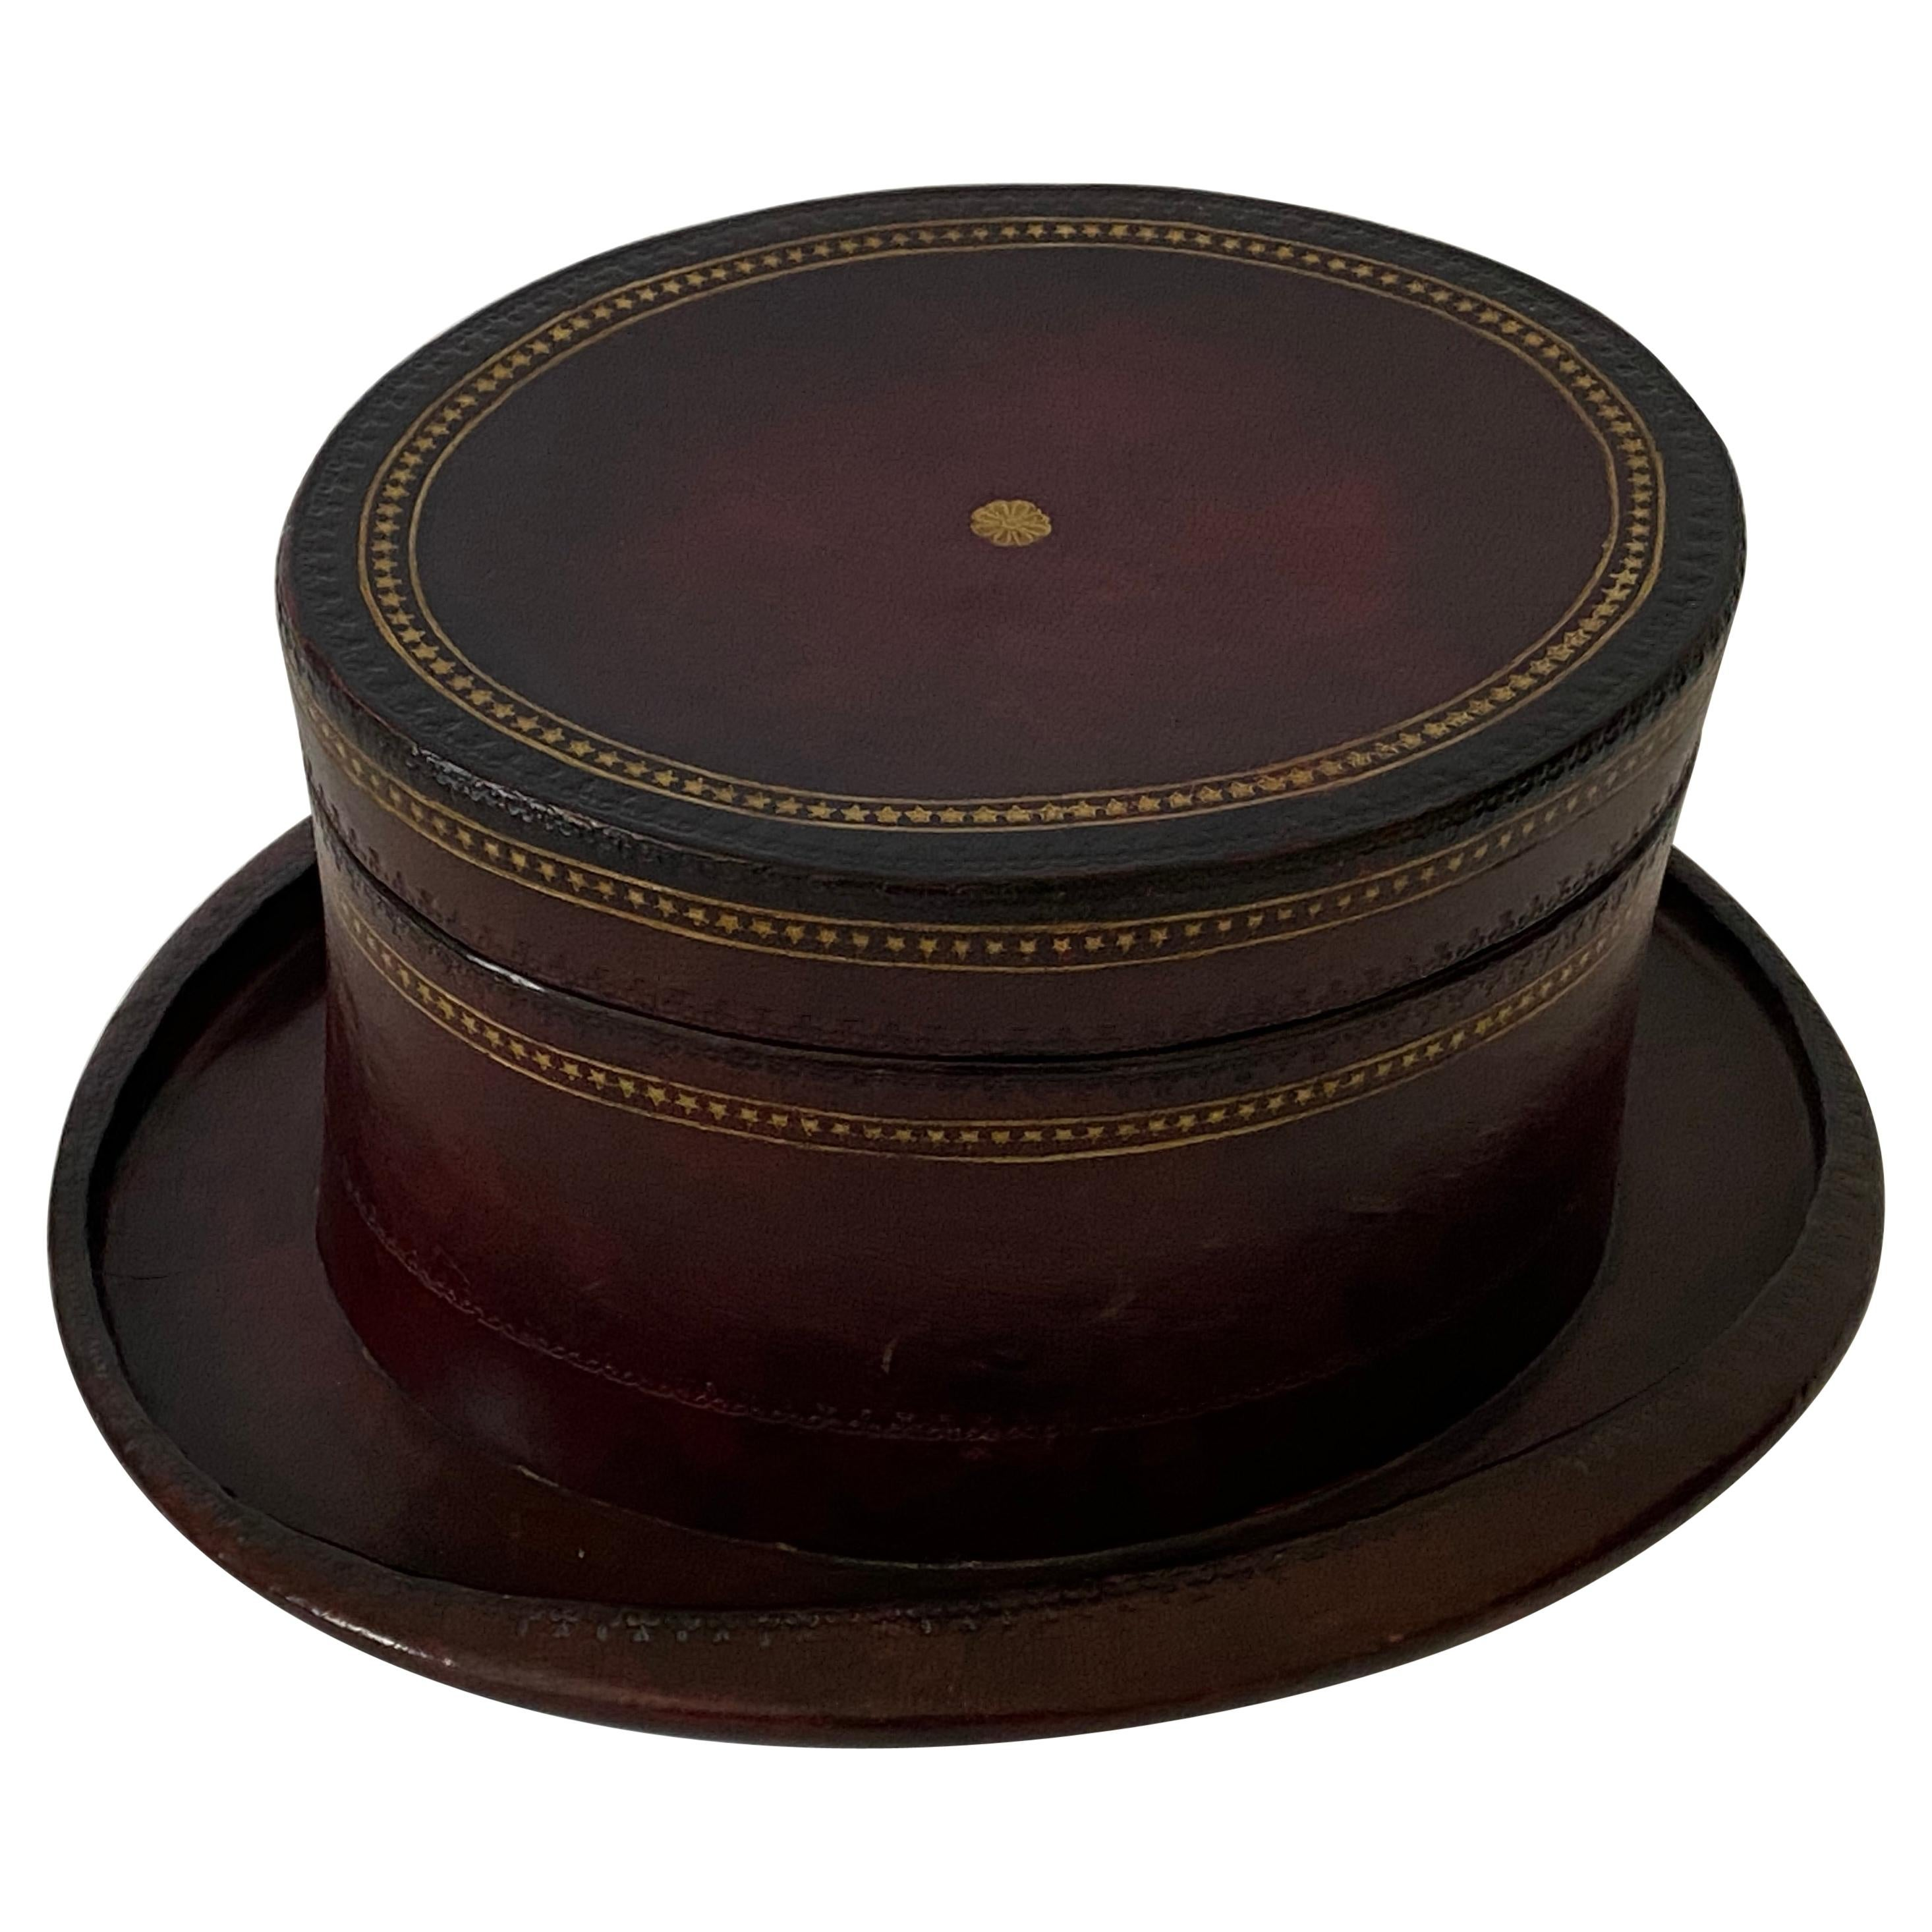 Maitland Smith Leather Covered Hat-Form Box